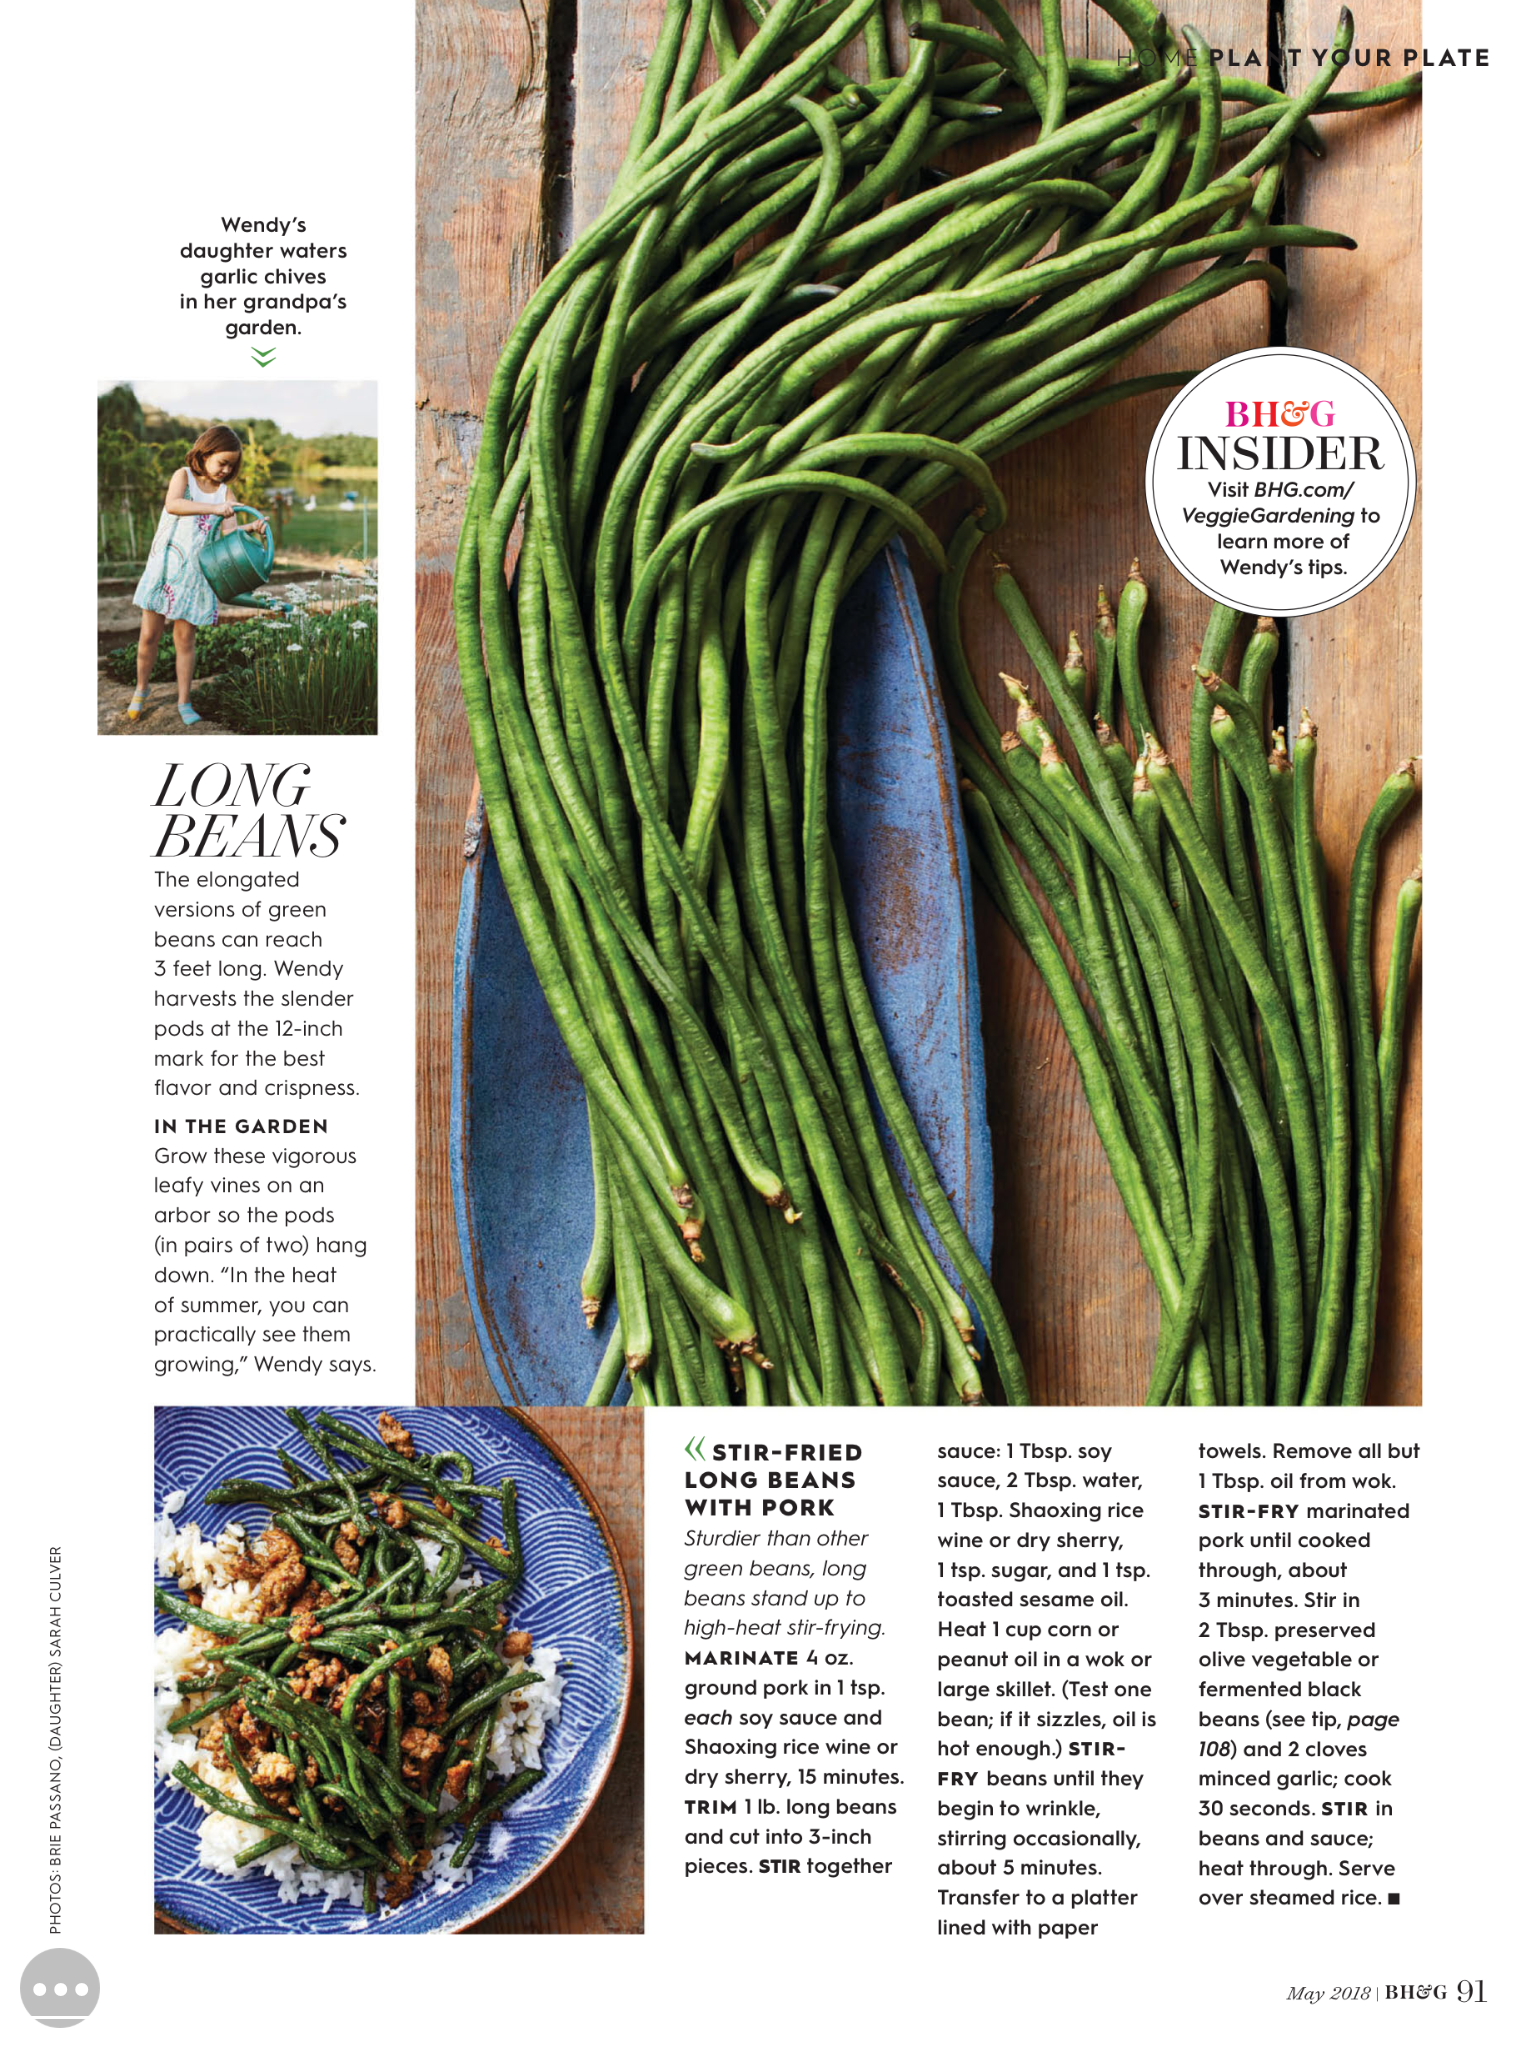 Pin By Adrienne Bryant On Side Dish Long Bean Garlic Chives Better Homes And Gardens